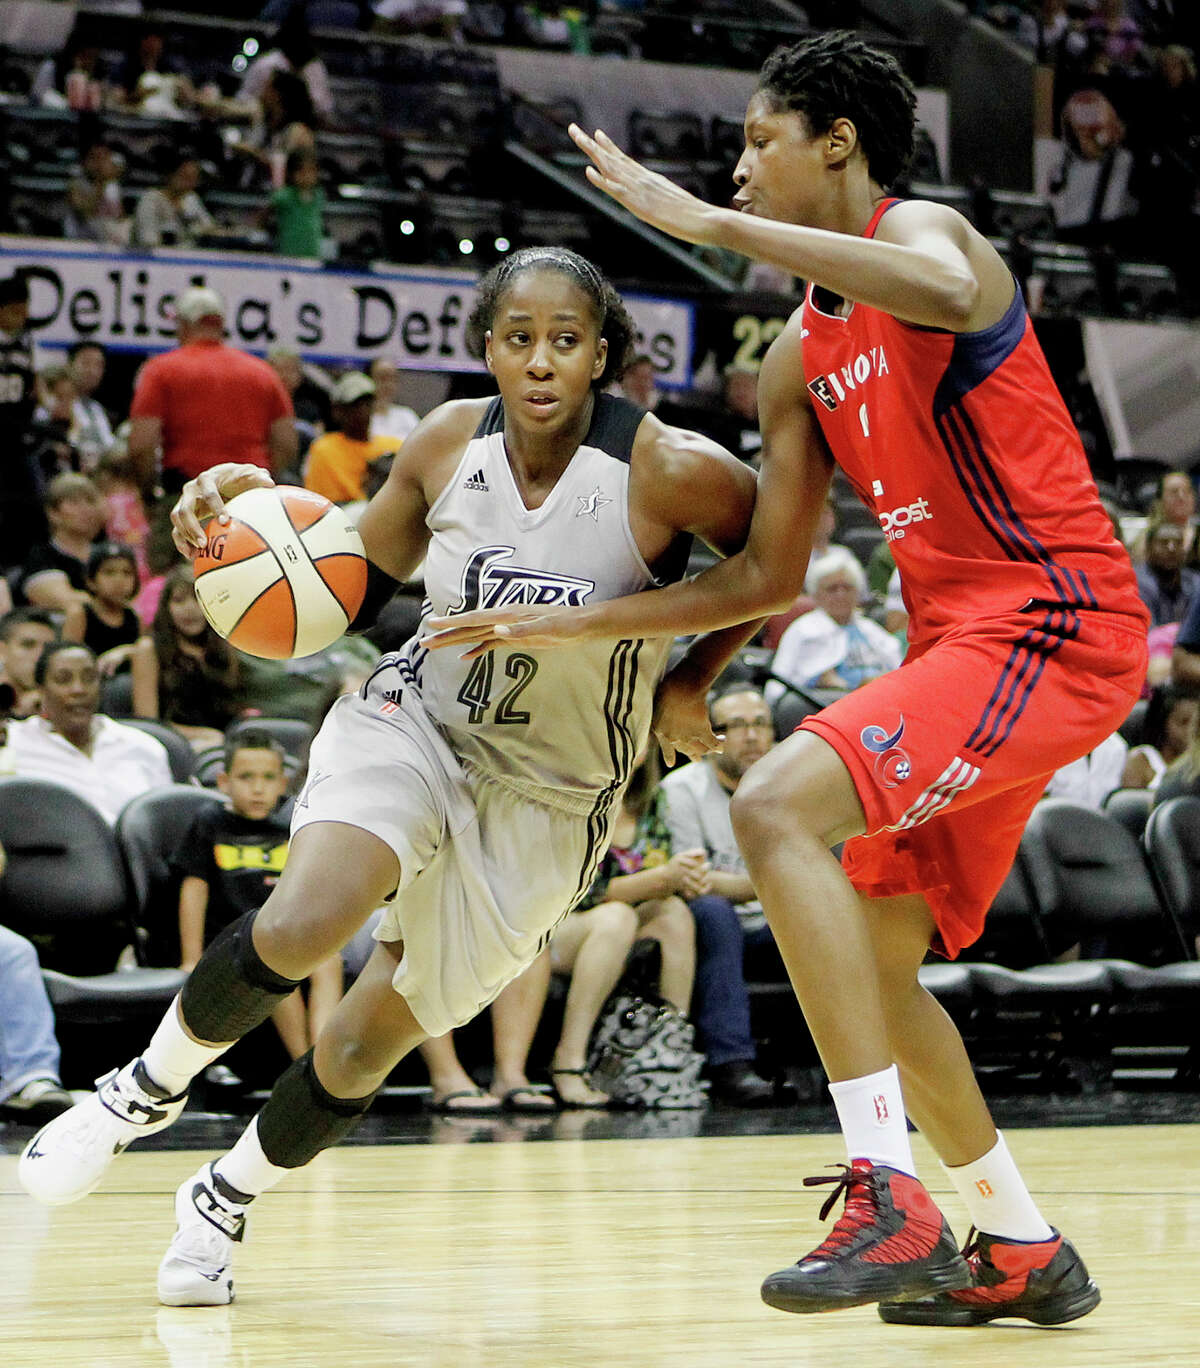 Shenise Johnson of the Silver Stars (left) drives around Michelle Snow of the Washington Mystics during the third quarter of their game at the AT&T Center on Friday, July 12, 2013. The Mystics downed the Silver Stars 83-73. MARVIN PFEIFFER/ mpfeiffer@express-news.net